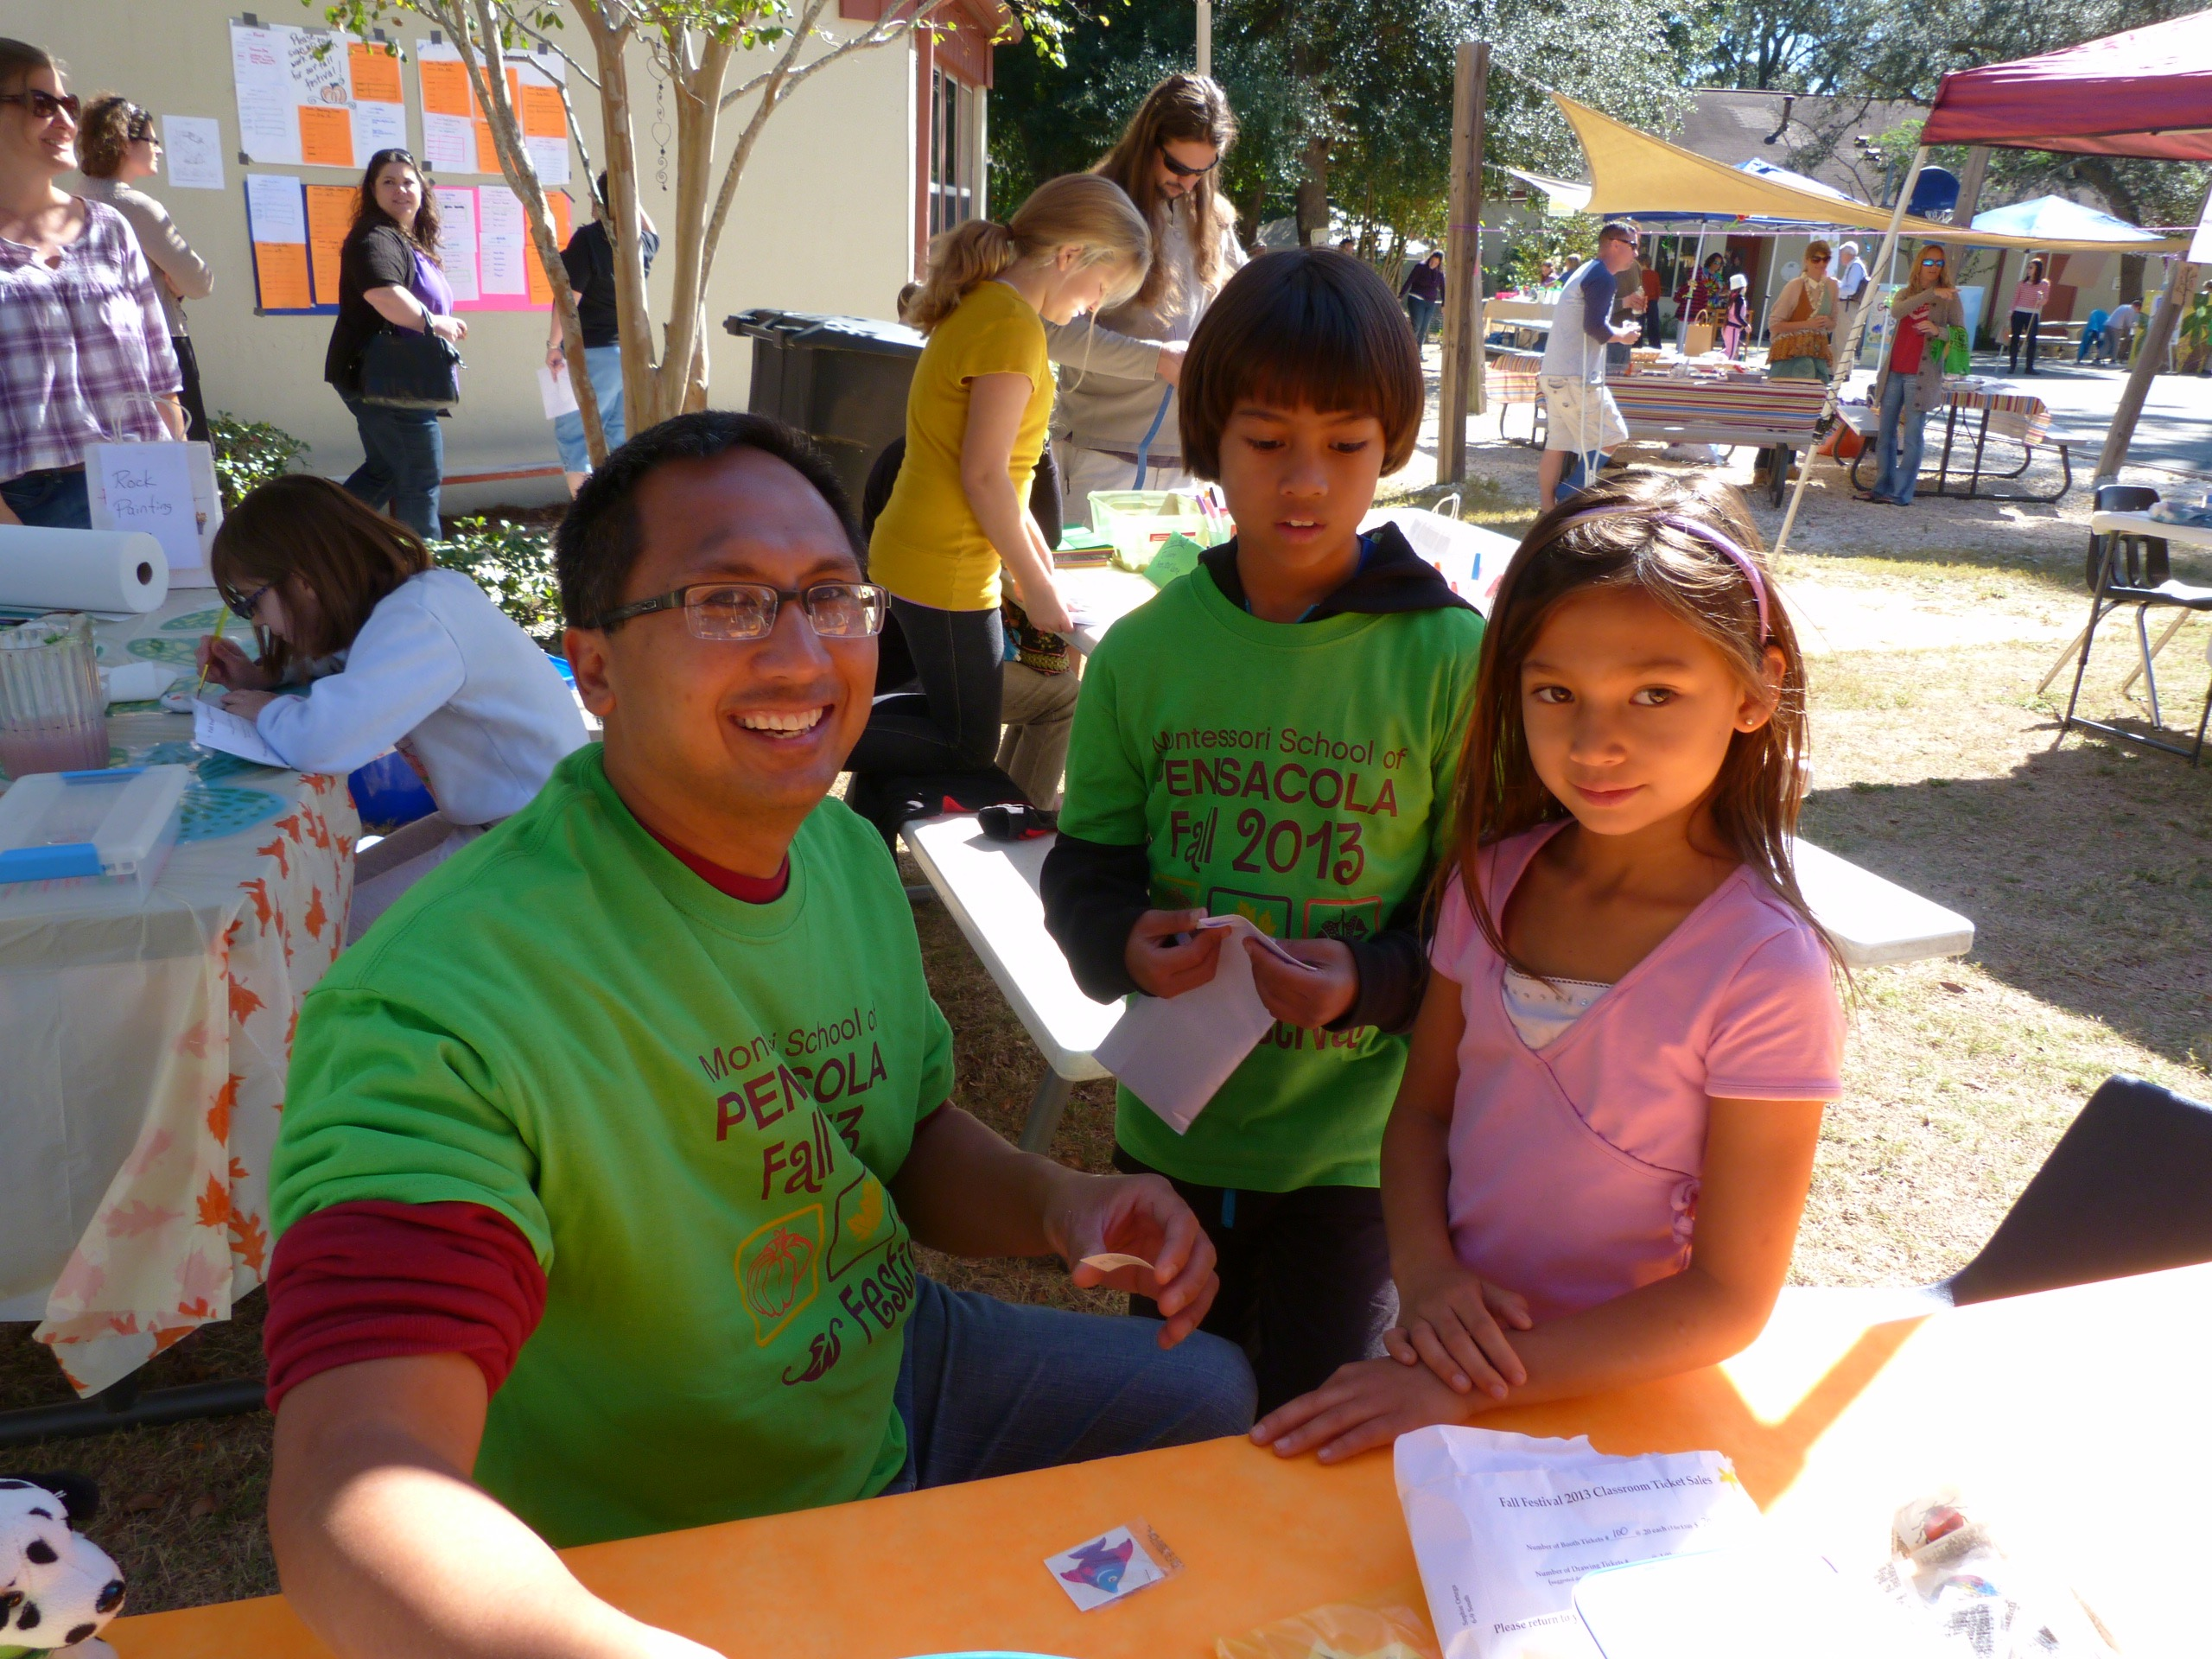 Father and children enjoying the 2013 MSP Fall Festival